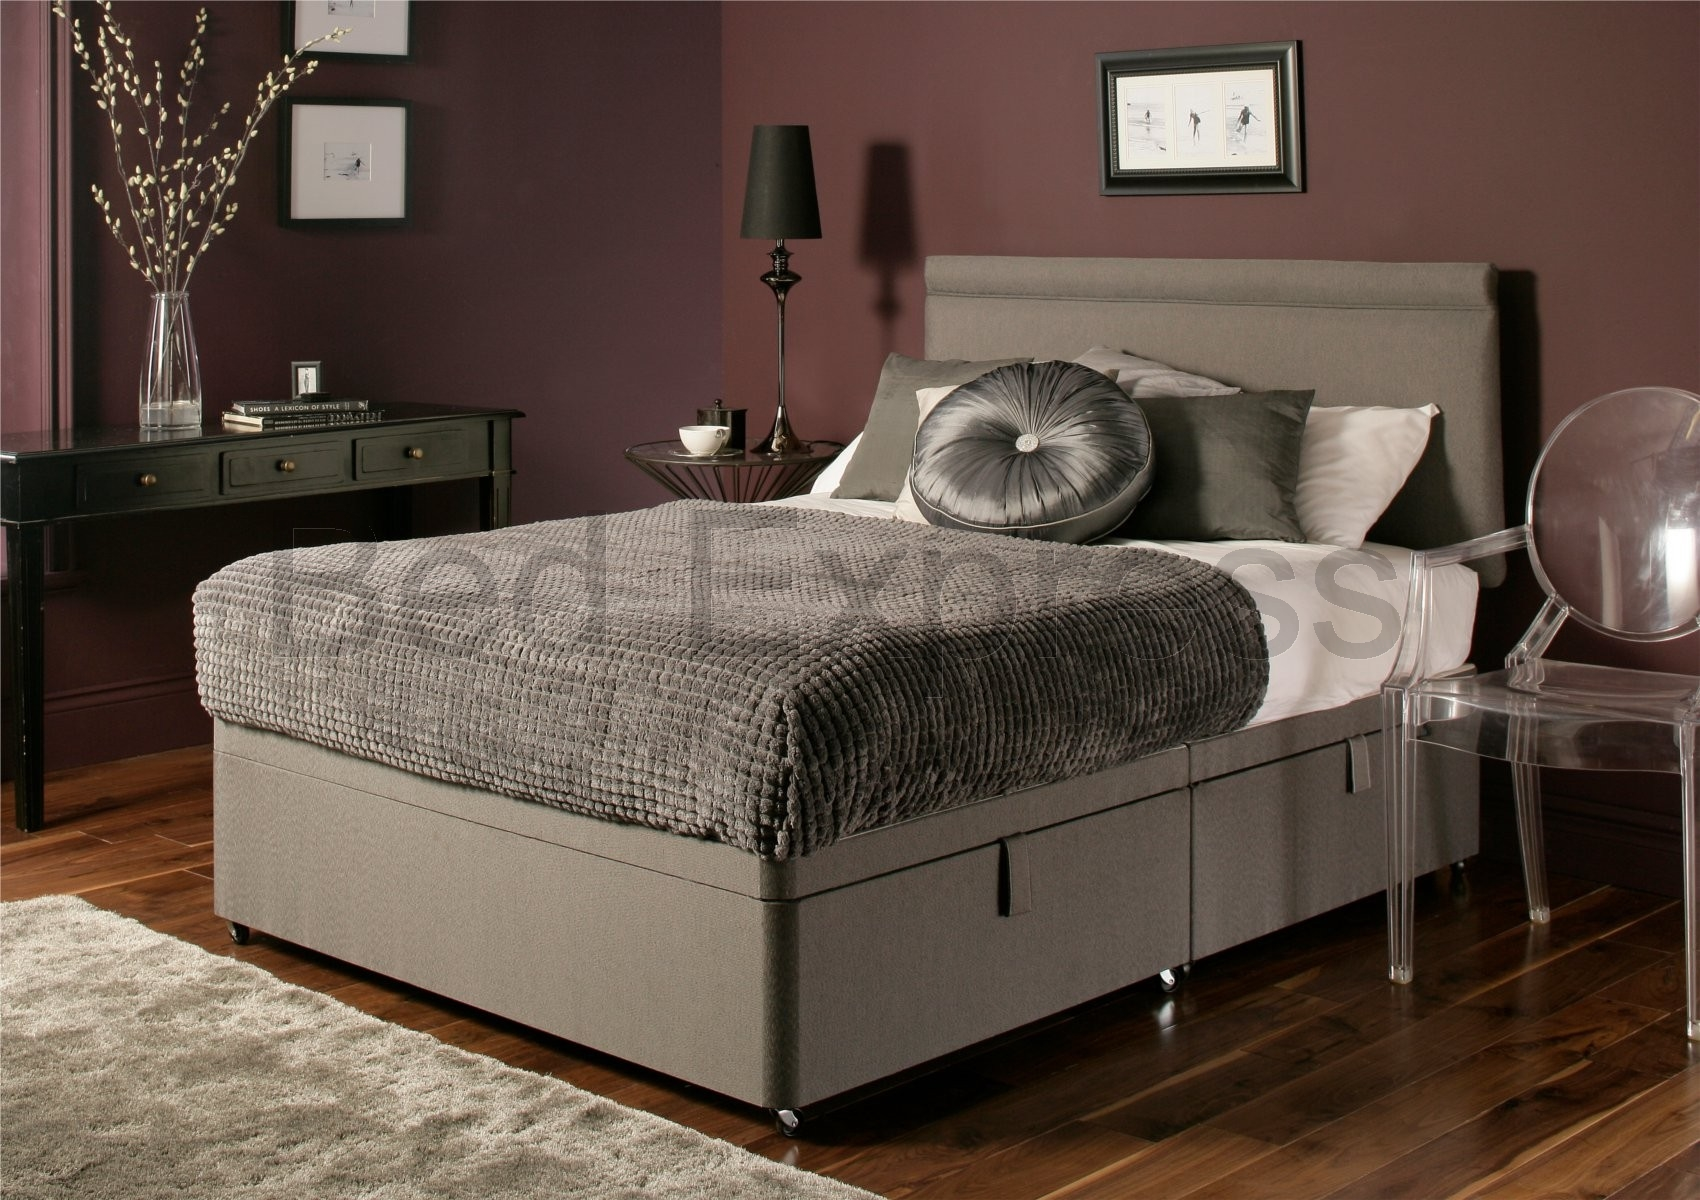 Luxury chenille ottoman divan storage bed single double for New double divan bed